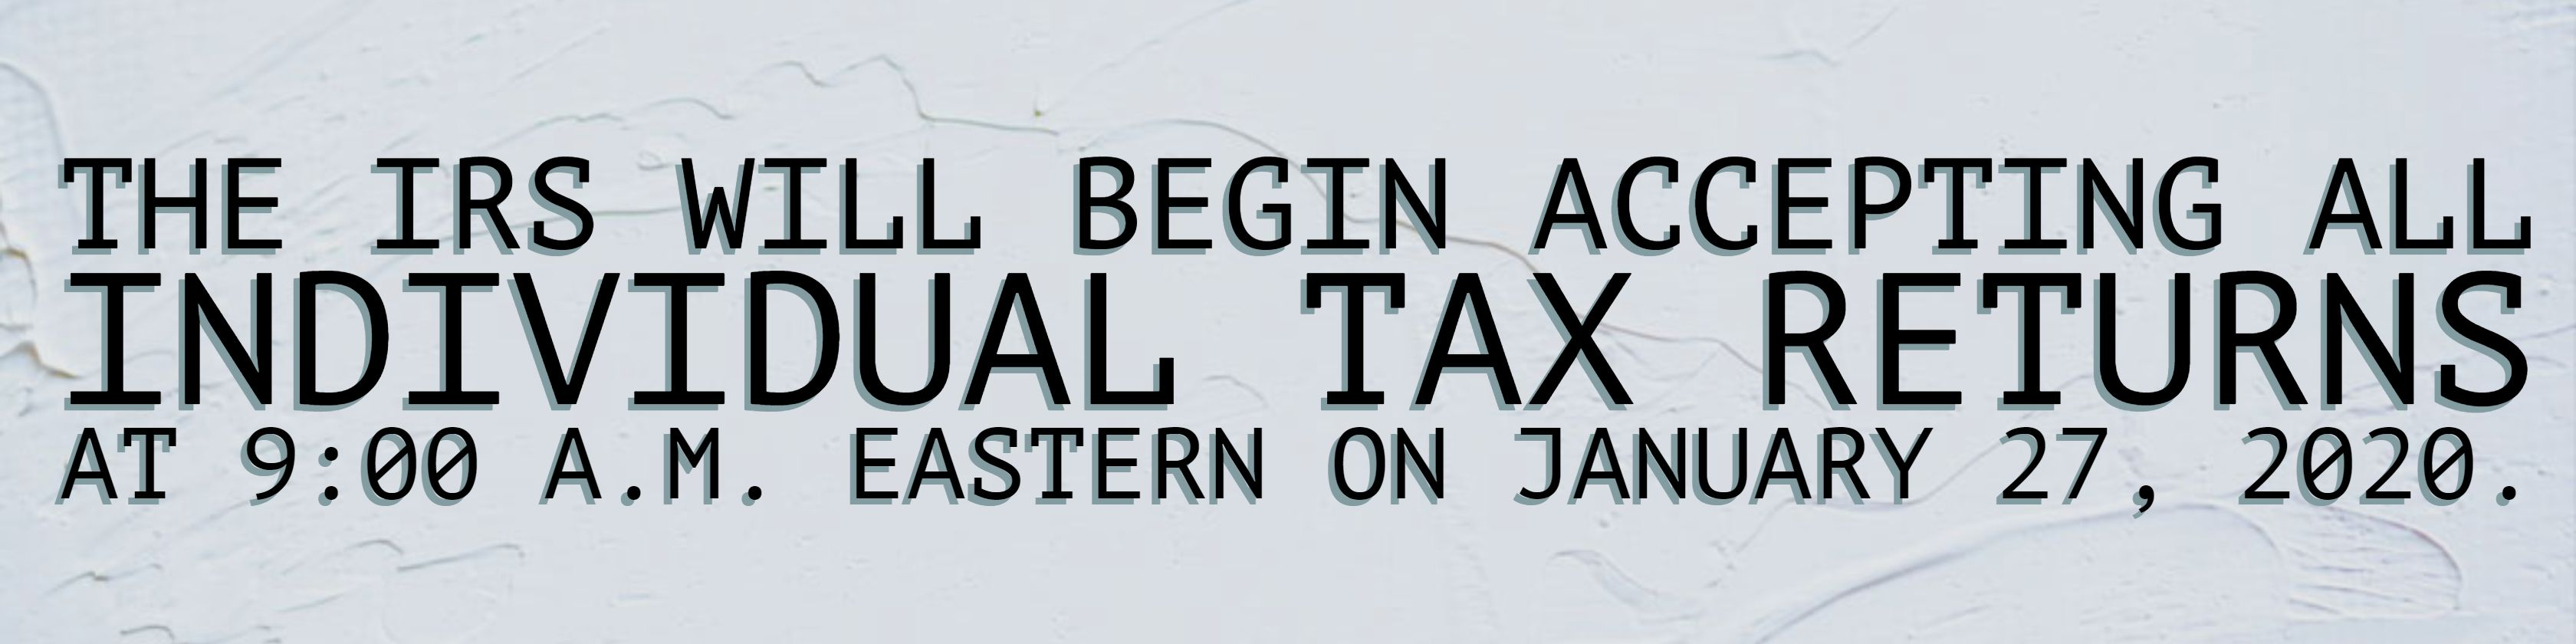 The IRS will begin accepting all individual tax returns at